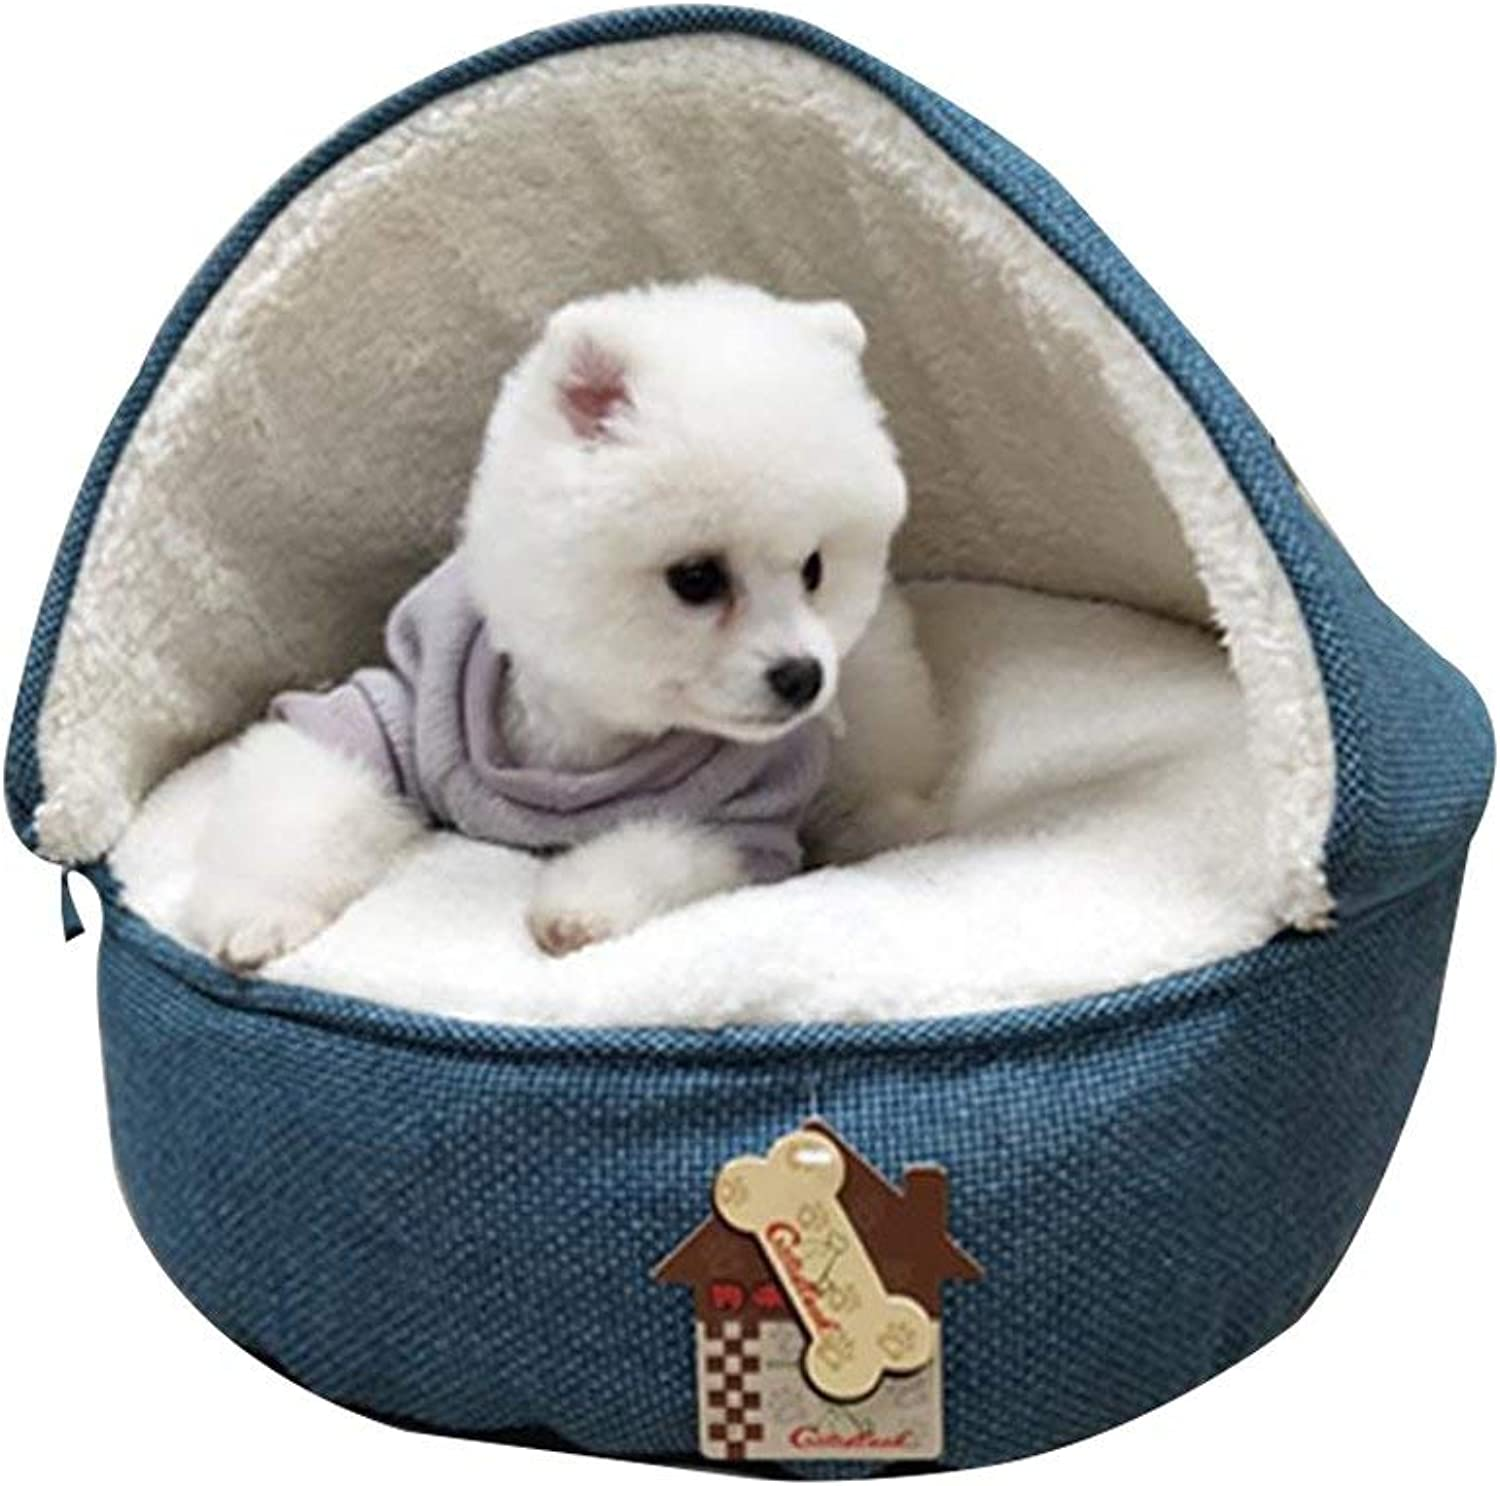 FUWUX Cat Dog House Kennel Puppy Nest Sleeping Bag Keep Warm Pet Supplies Pet bed Dog Bed Pet House